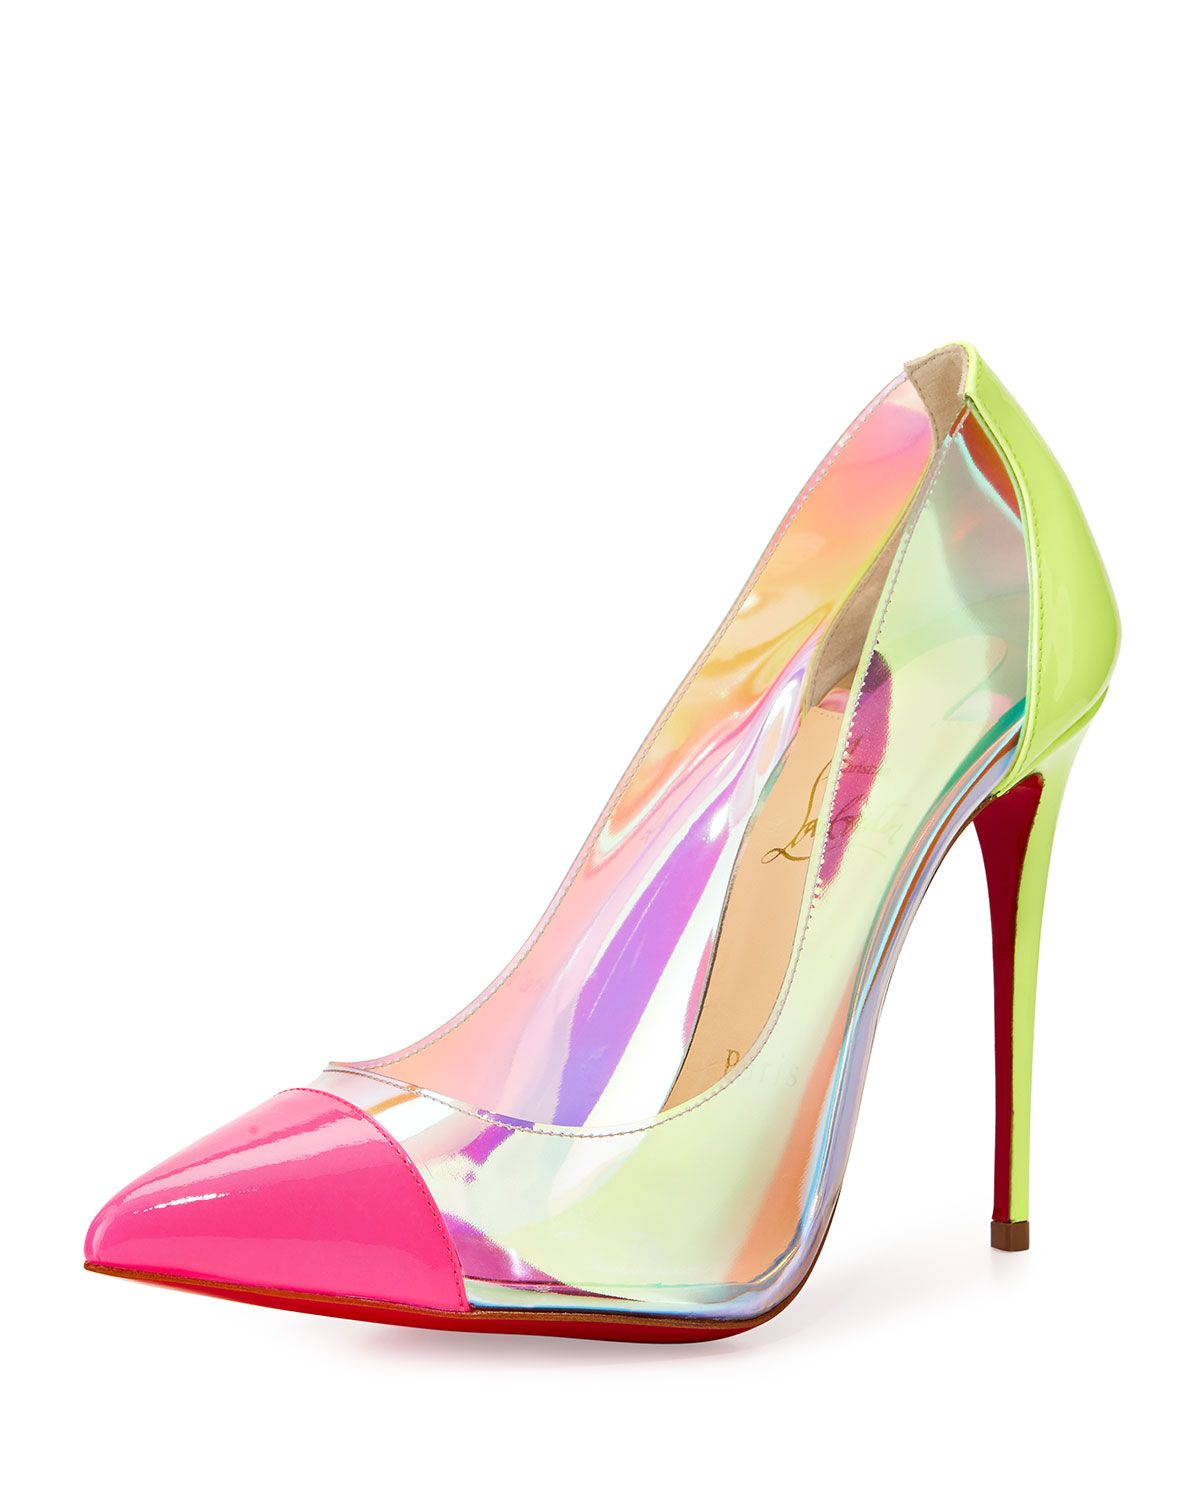 f4f721205168 Christian Louboutin Debout Patent PVC Red Sole Pump